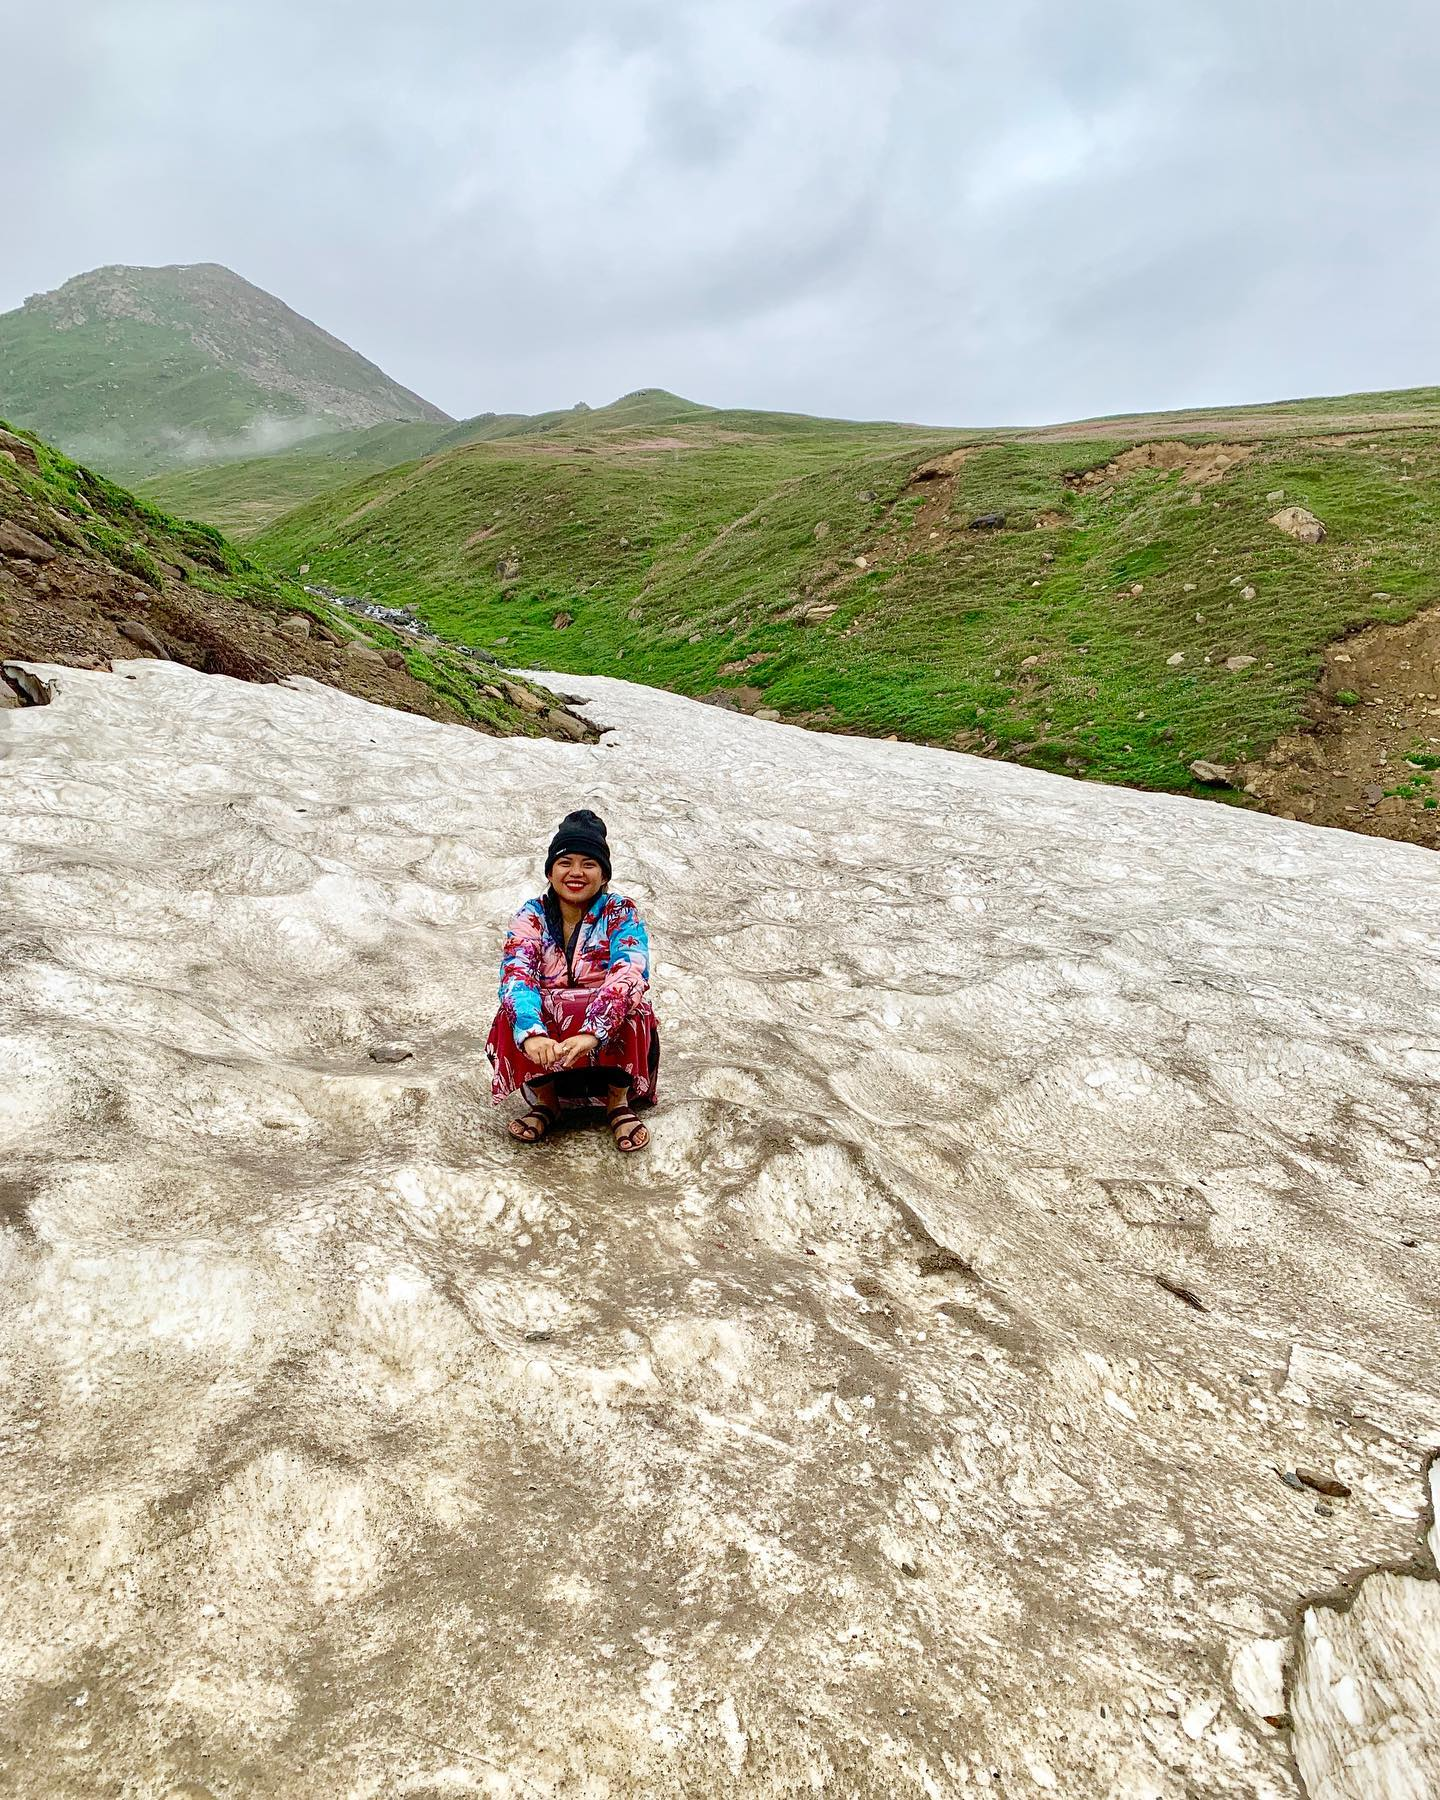 Kach Solo Travels in 2019 This is Pakistan My country 5.jpg